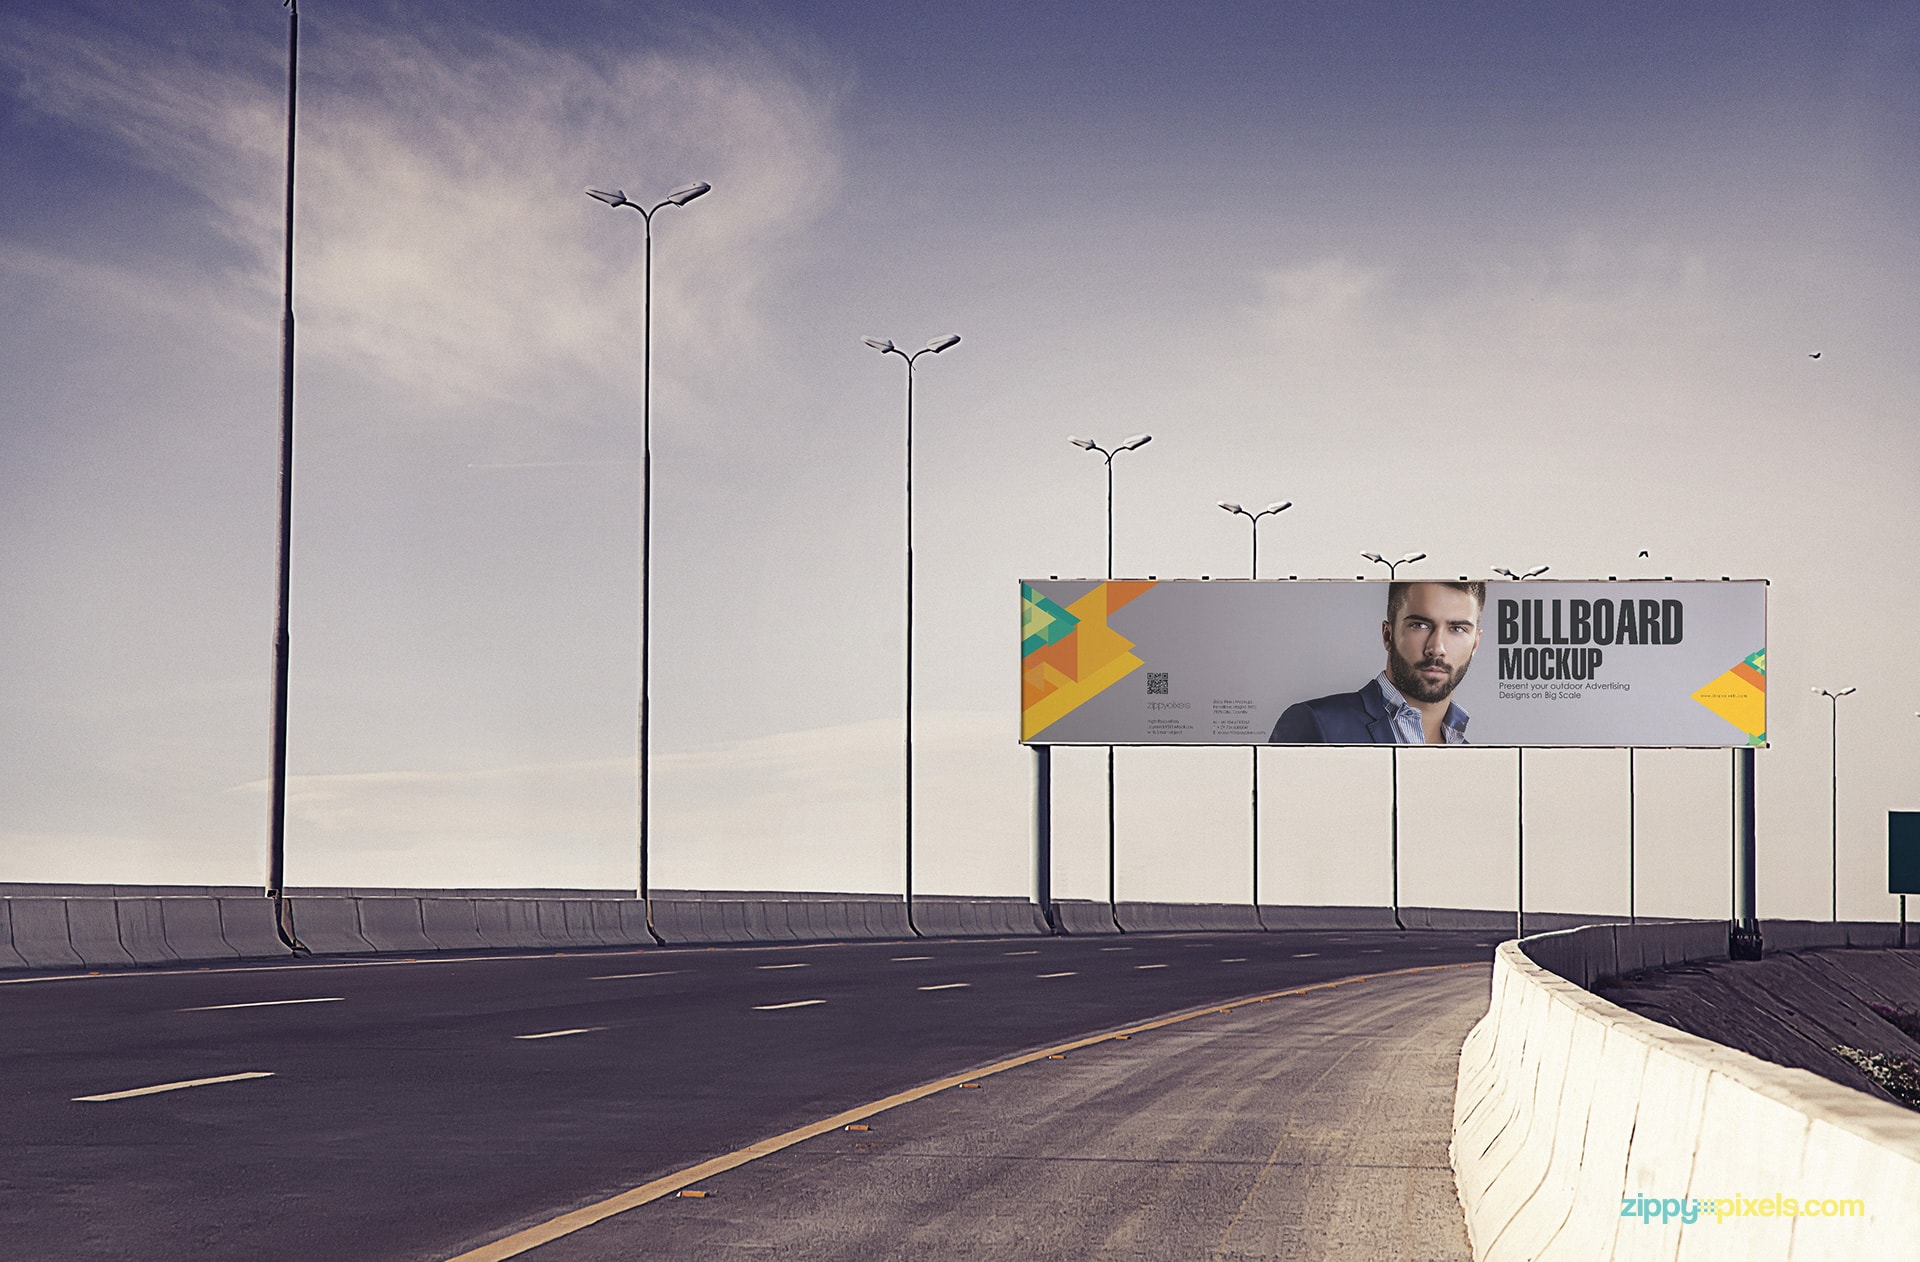 Present your advertisement design on highway billboard mockup